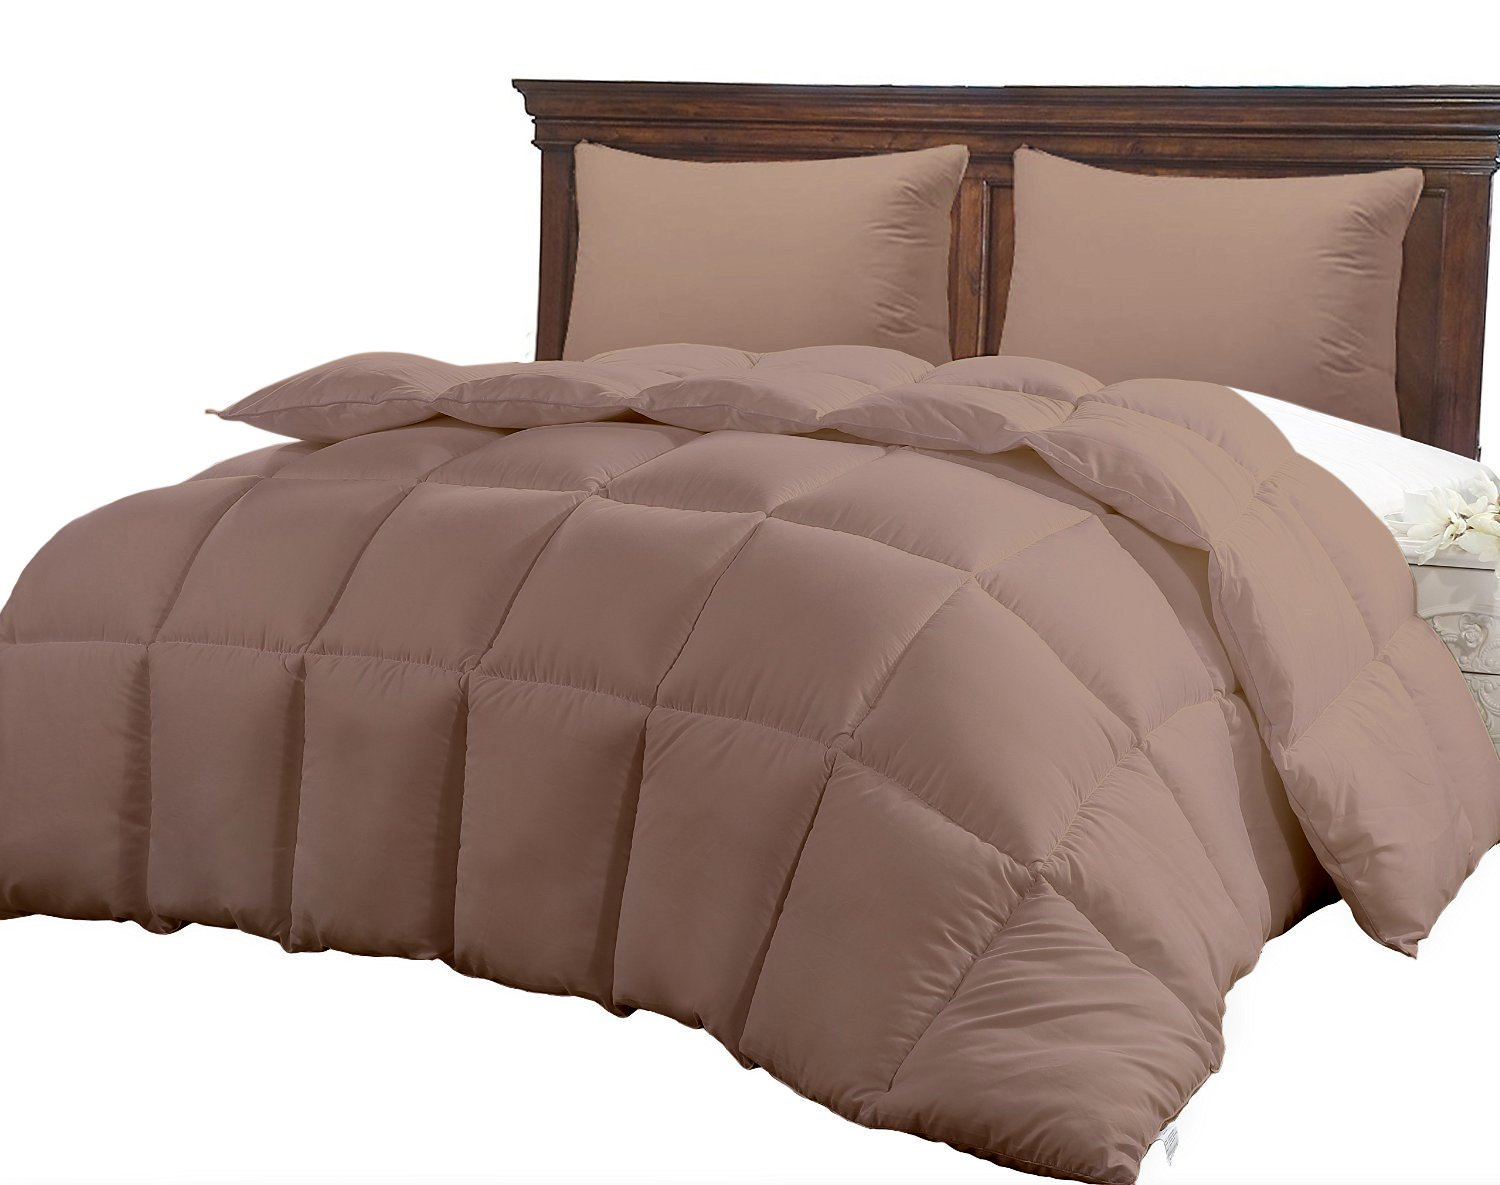 CGK Unlimited King Size Comforter - Solid Squared Duvet Insert Brown - Softer Than Goose Down Alternative Duvets - All Season Comforters